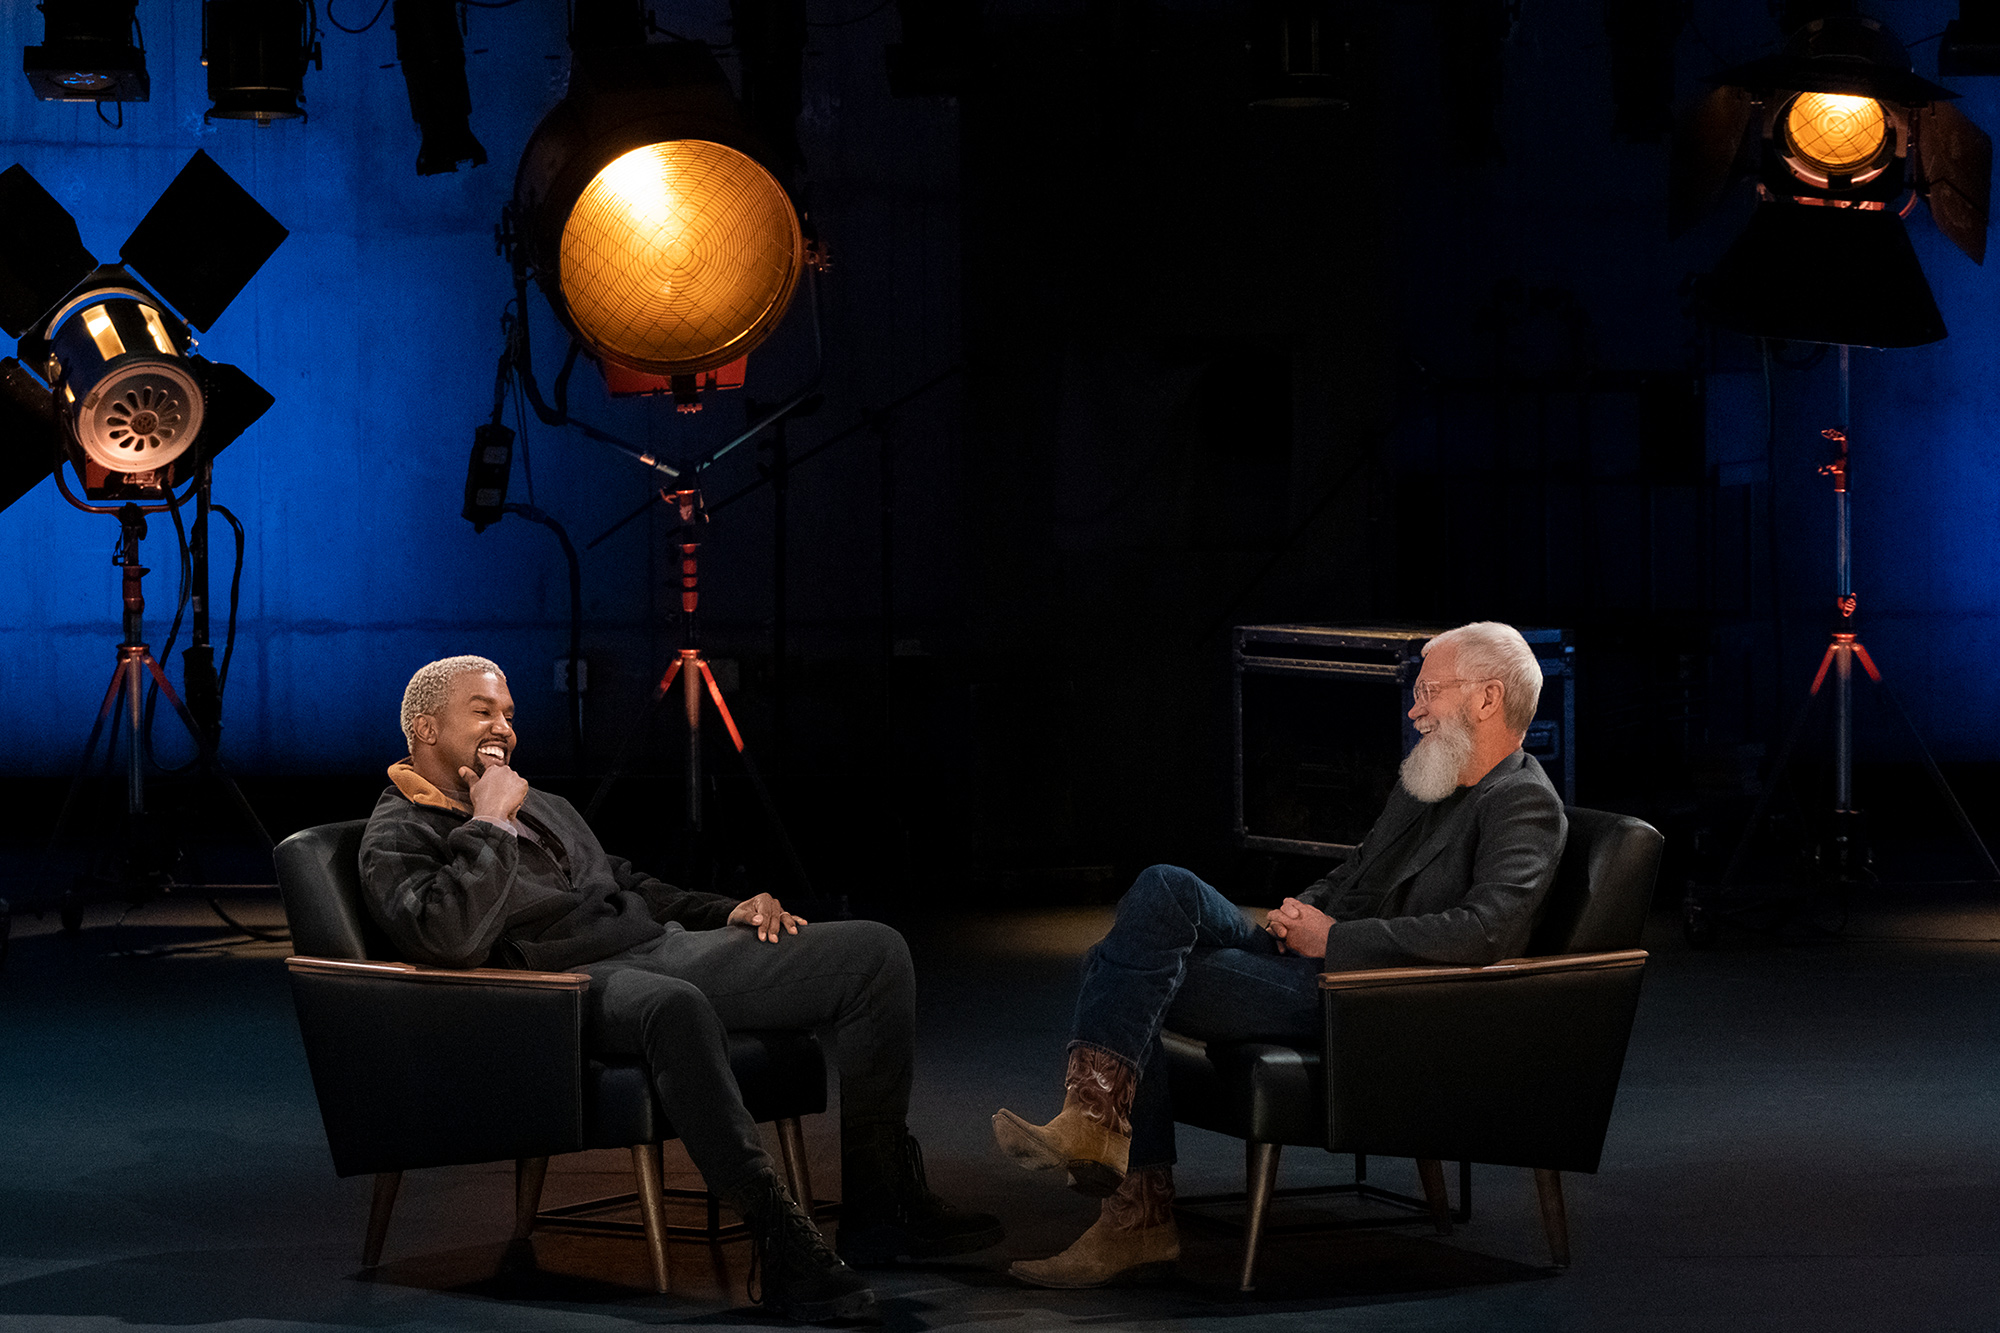 David Letterman - My Next Guest Needs No Introduction - Season 2